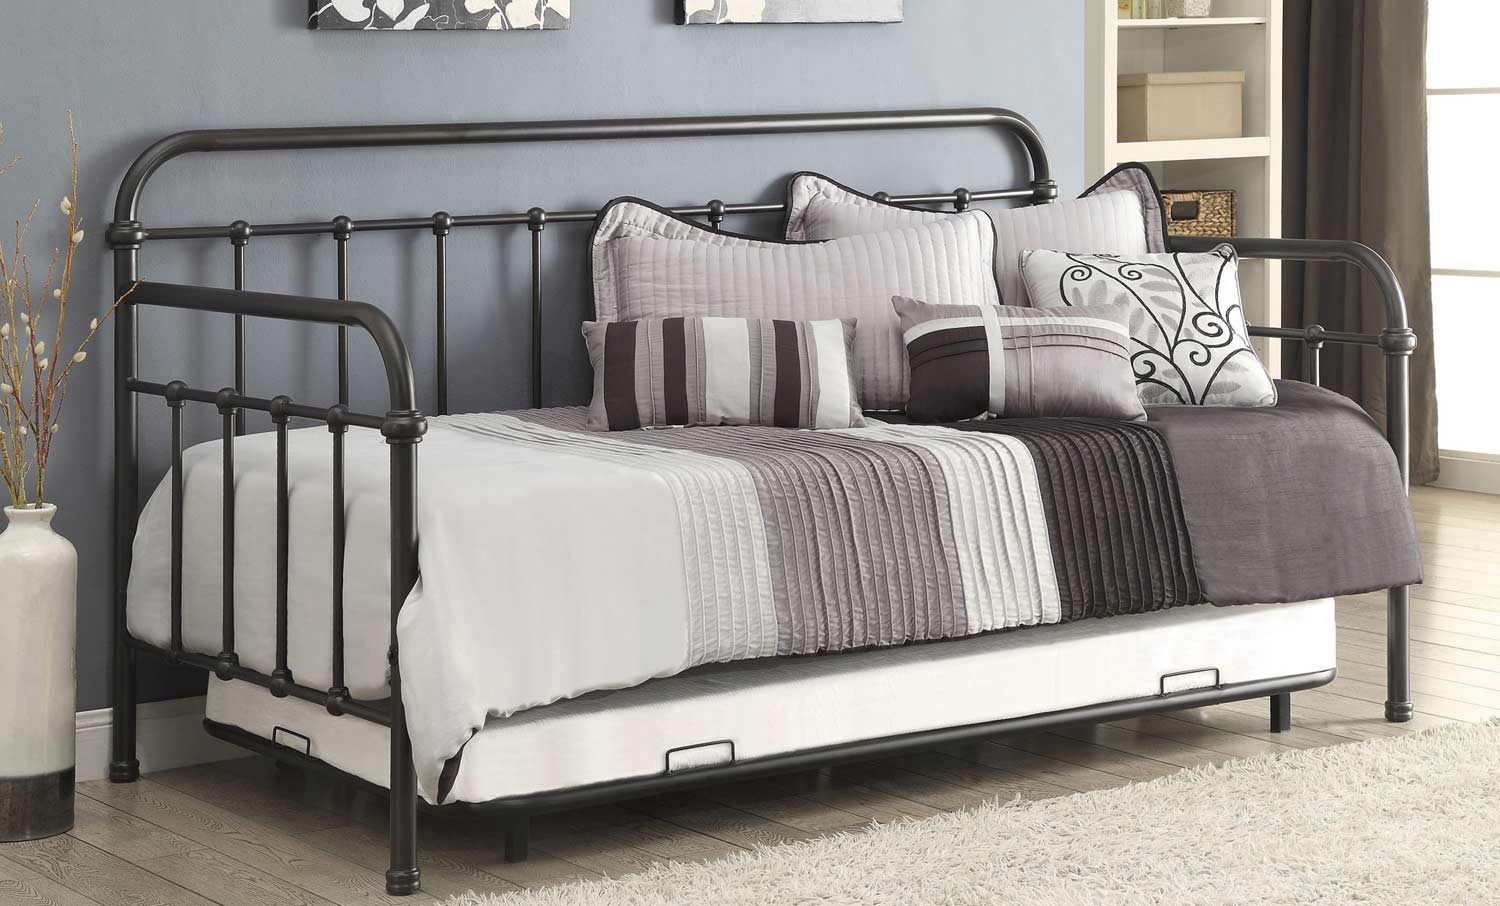 Coaster 300398 Daybed with trundle - Dark Bronze